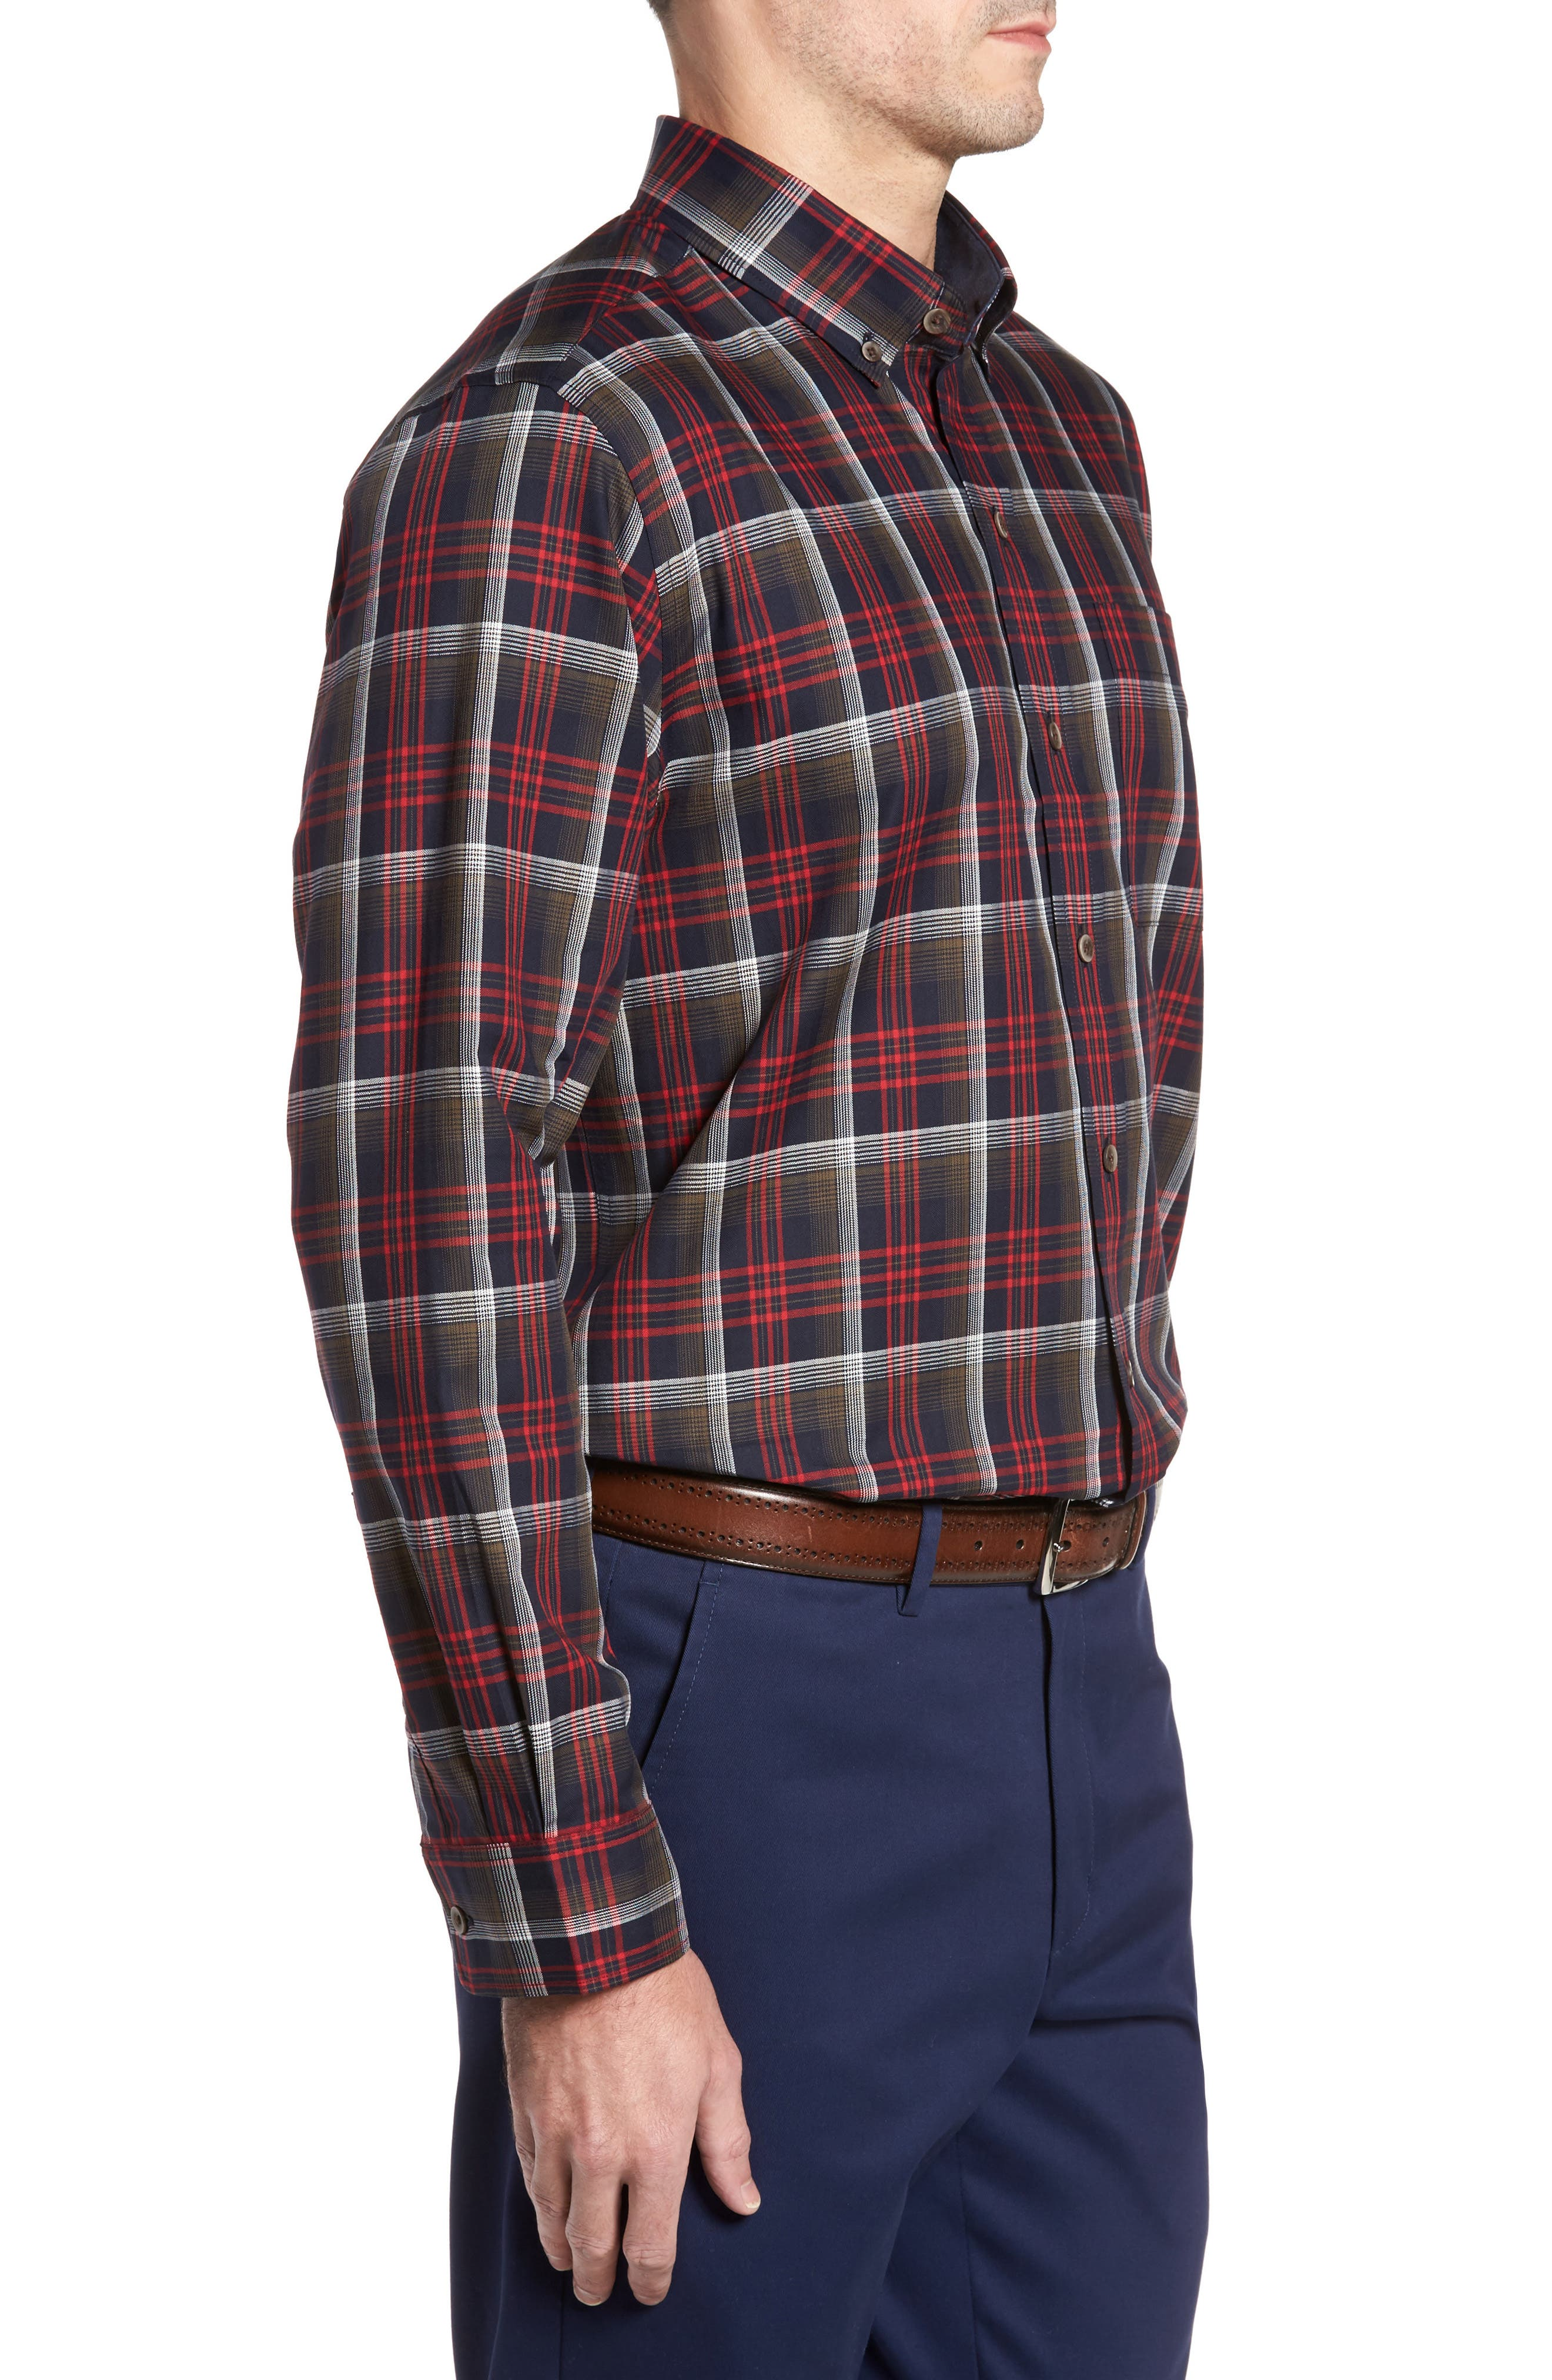 Dry Creek Non-Iron Plaid Sport Shirt,                             Alternate thumbnail 3, color,                             622